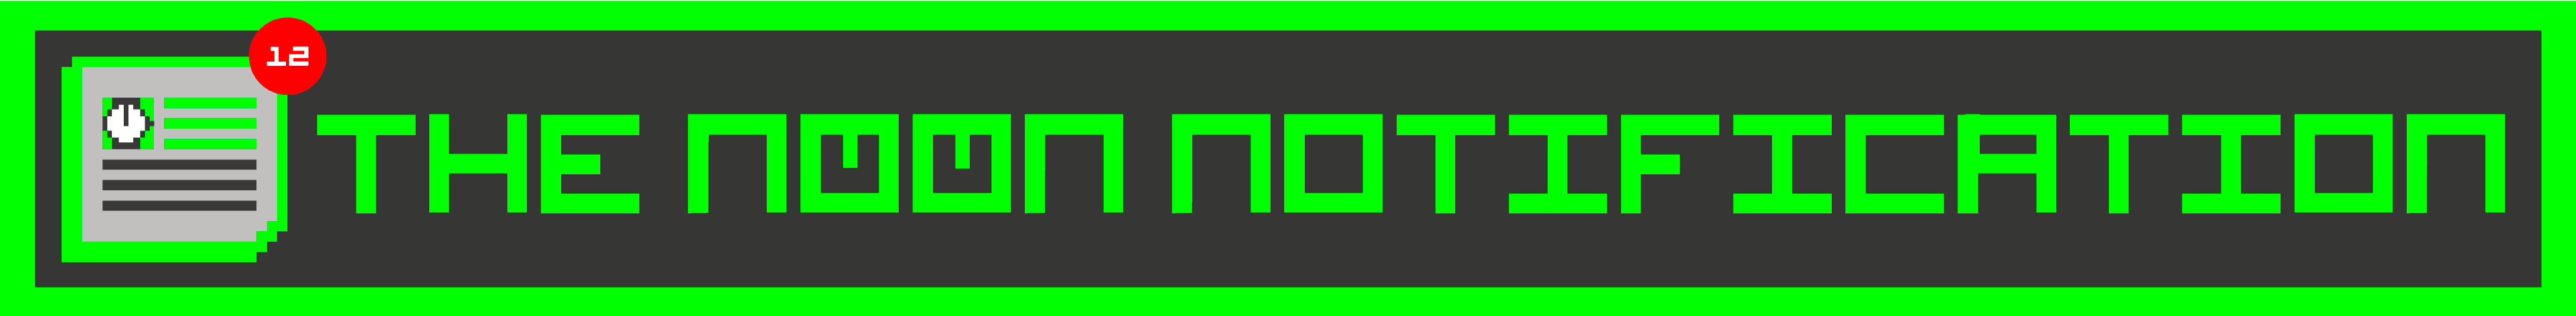 The Noonification banner